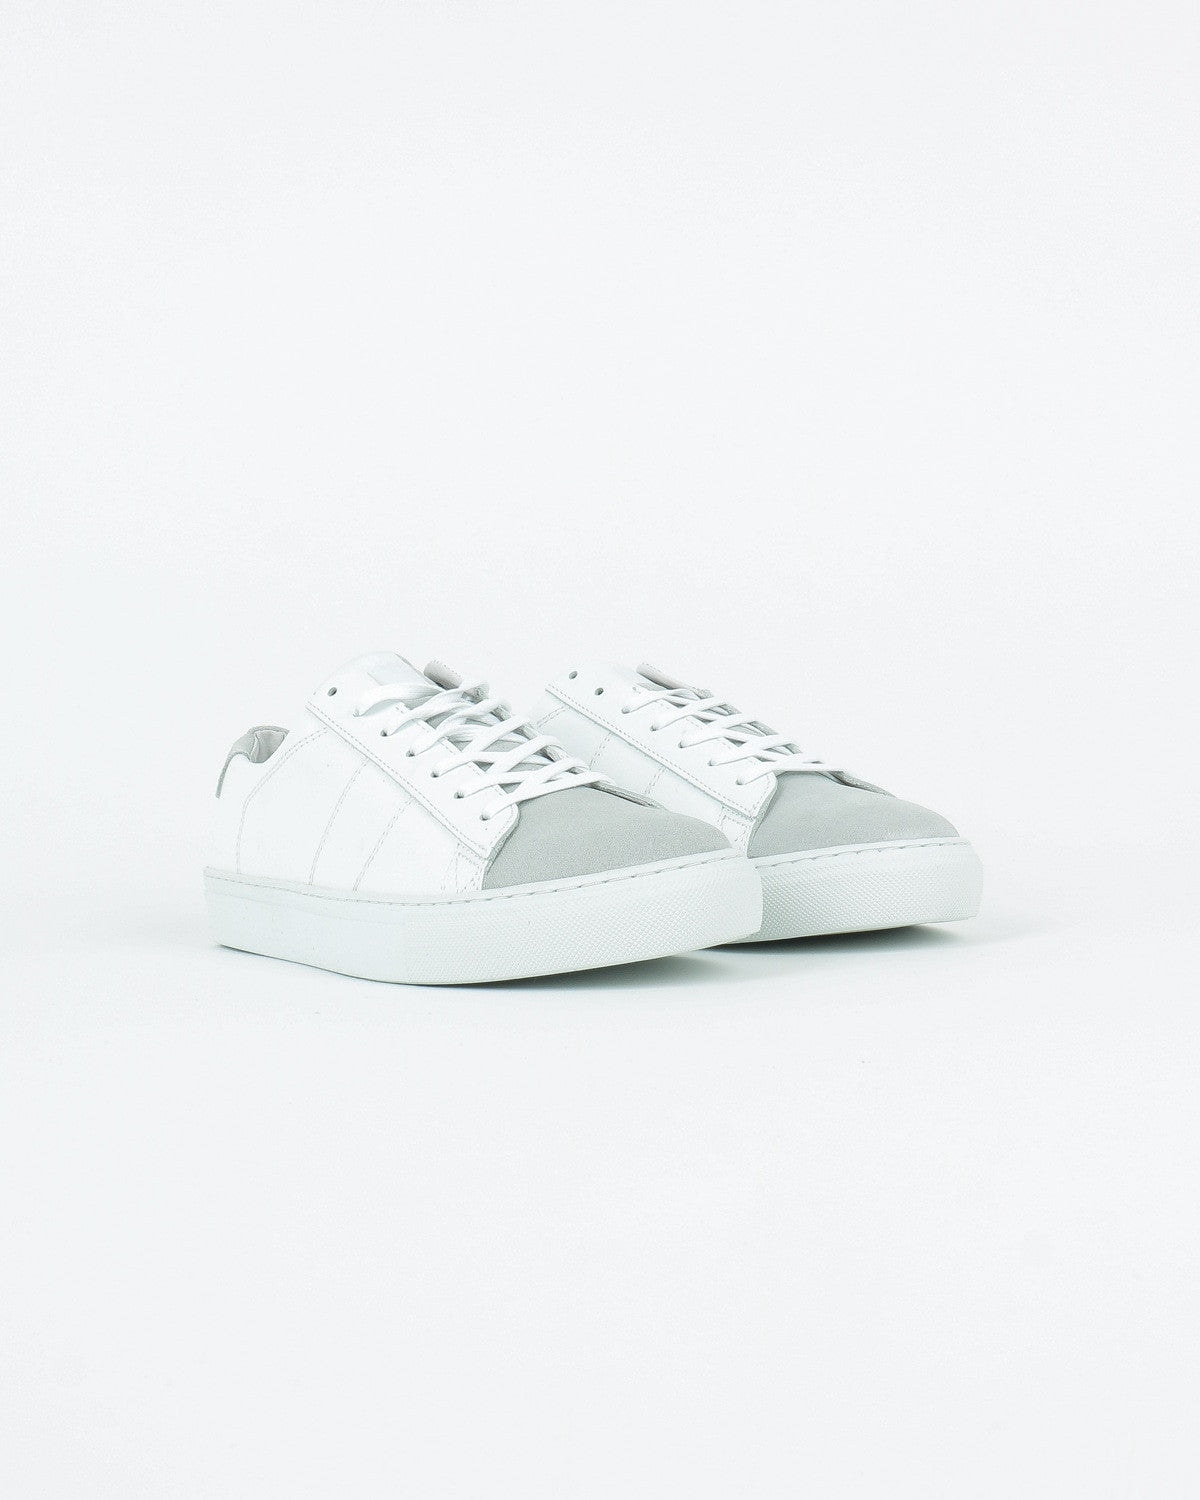 garment project_ace sneaker_white leather suede_view_2_4